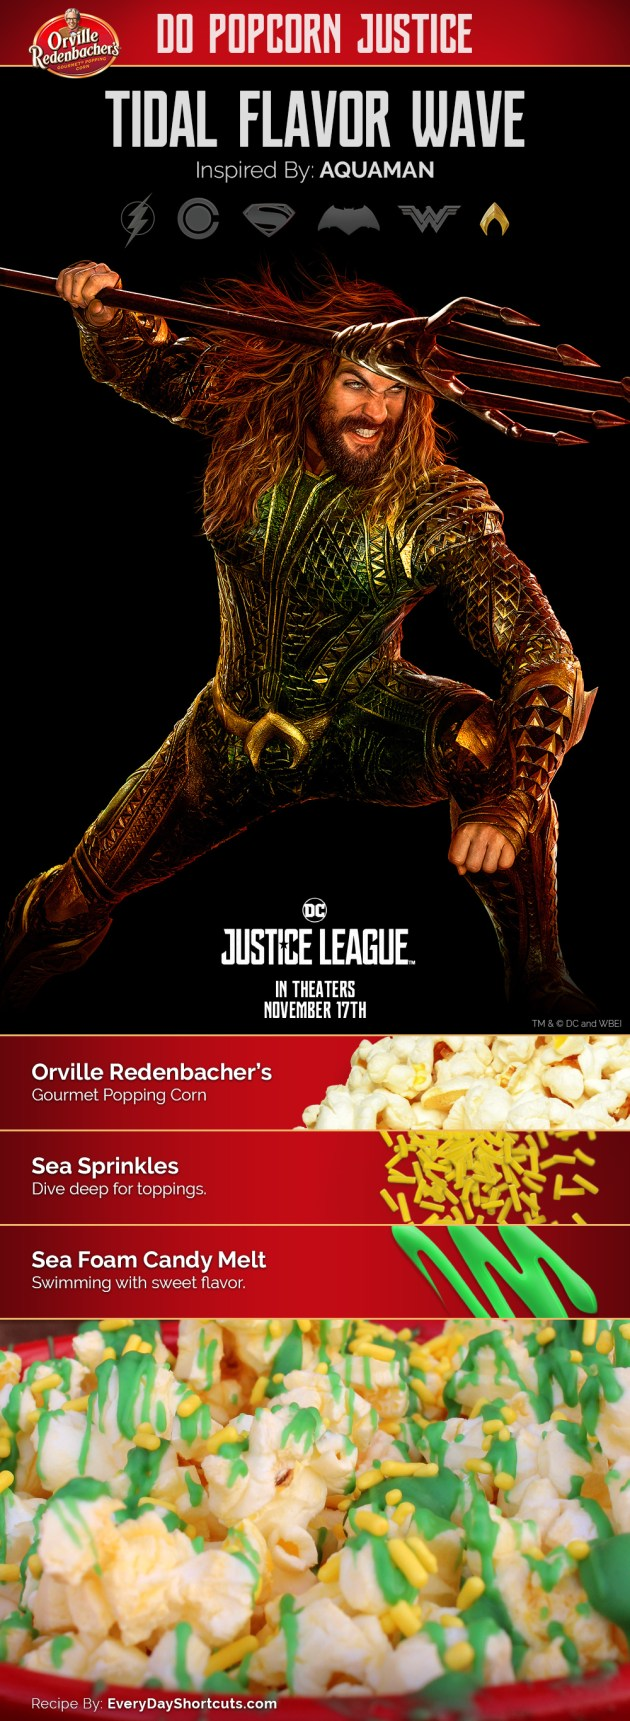 orville_recipe_Aquaman_